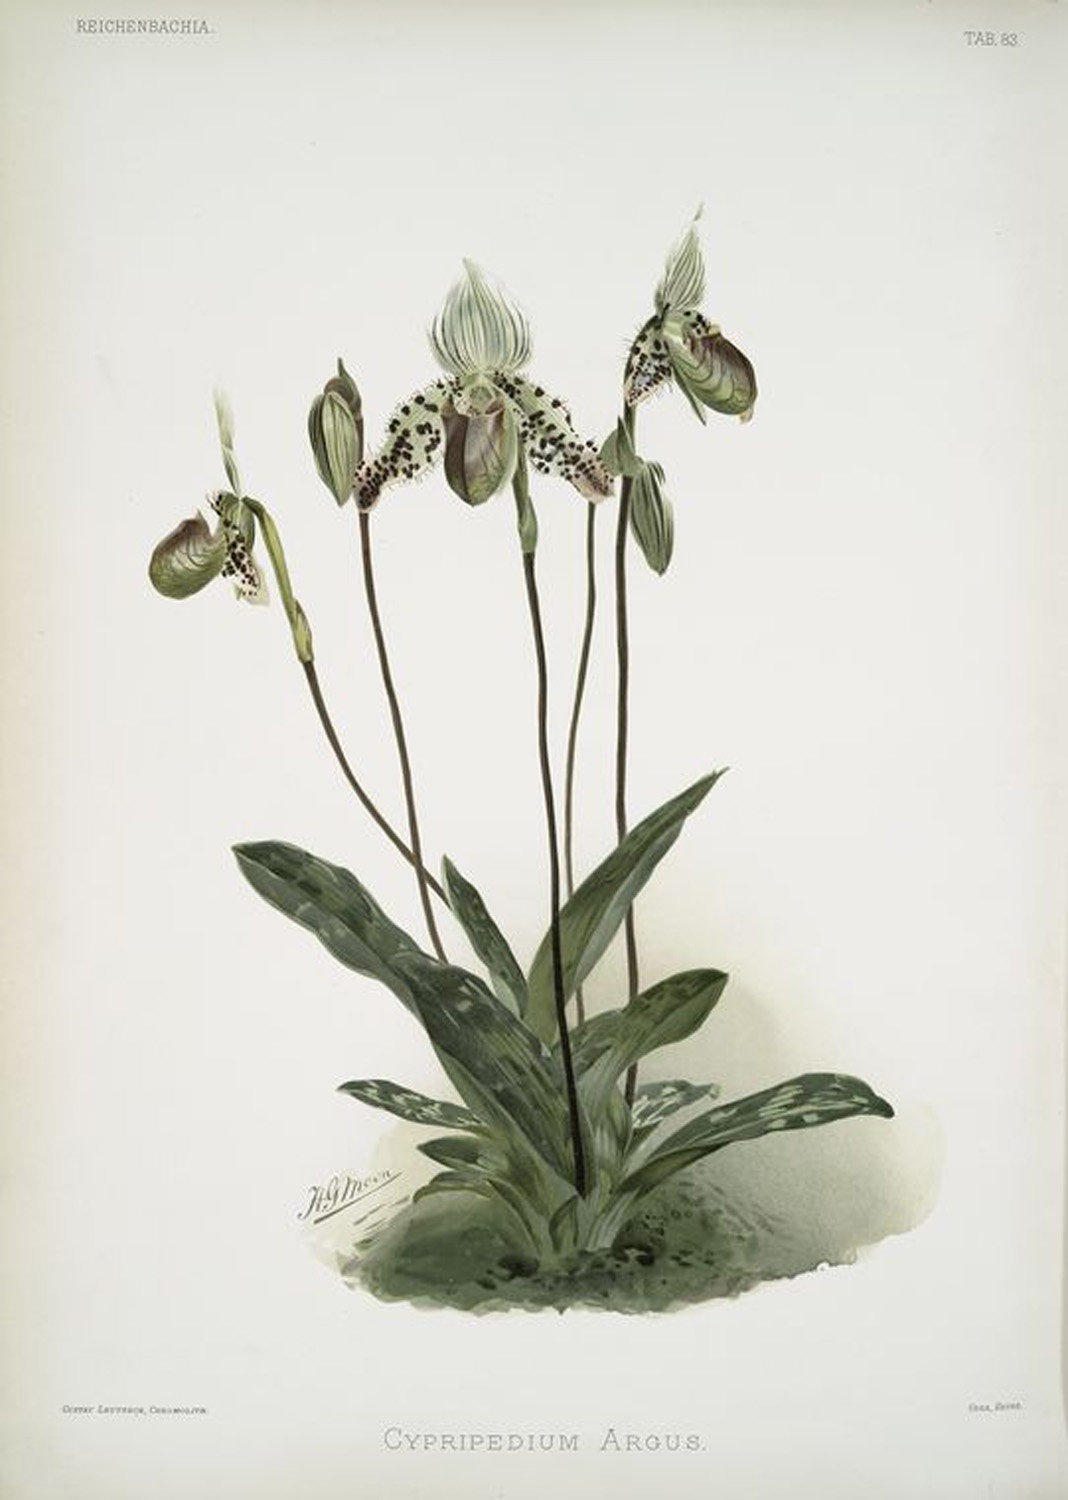 It is believed that the contemplation of orchids helps cope with grief. In China, orchids are also considered as possessor of some magical properties. In traditional Chinese cults and magic rituals orchids were used to drive away evil spirits. Orchid's seeds were used as an ingredient in the making of a love potion.